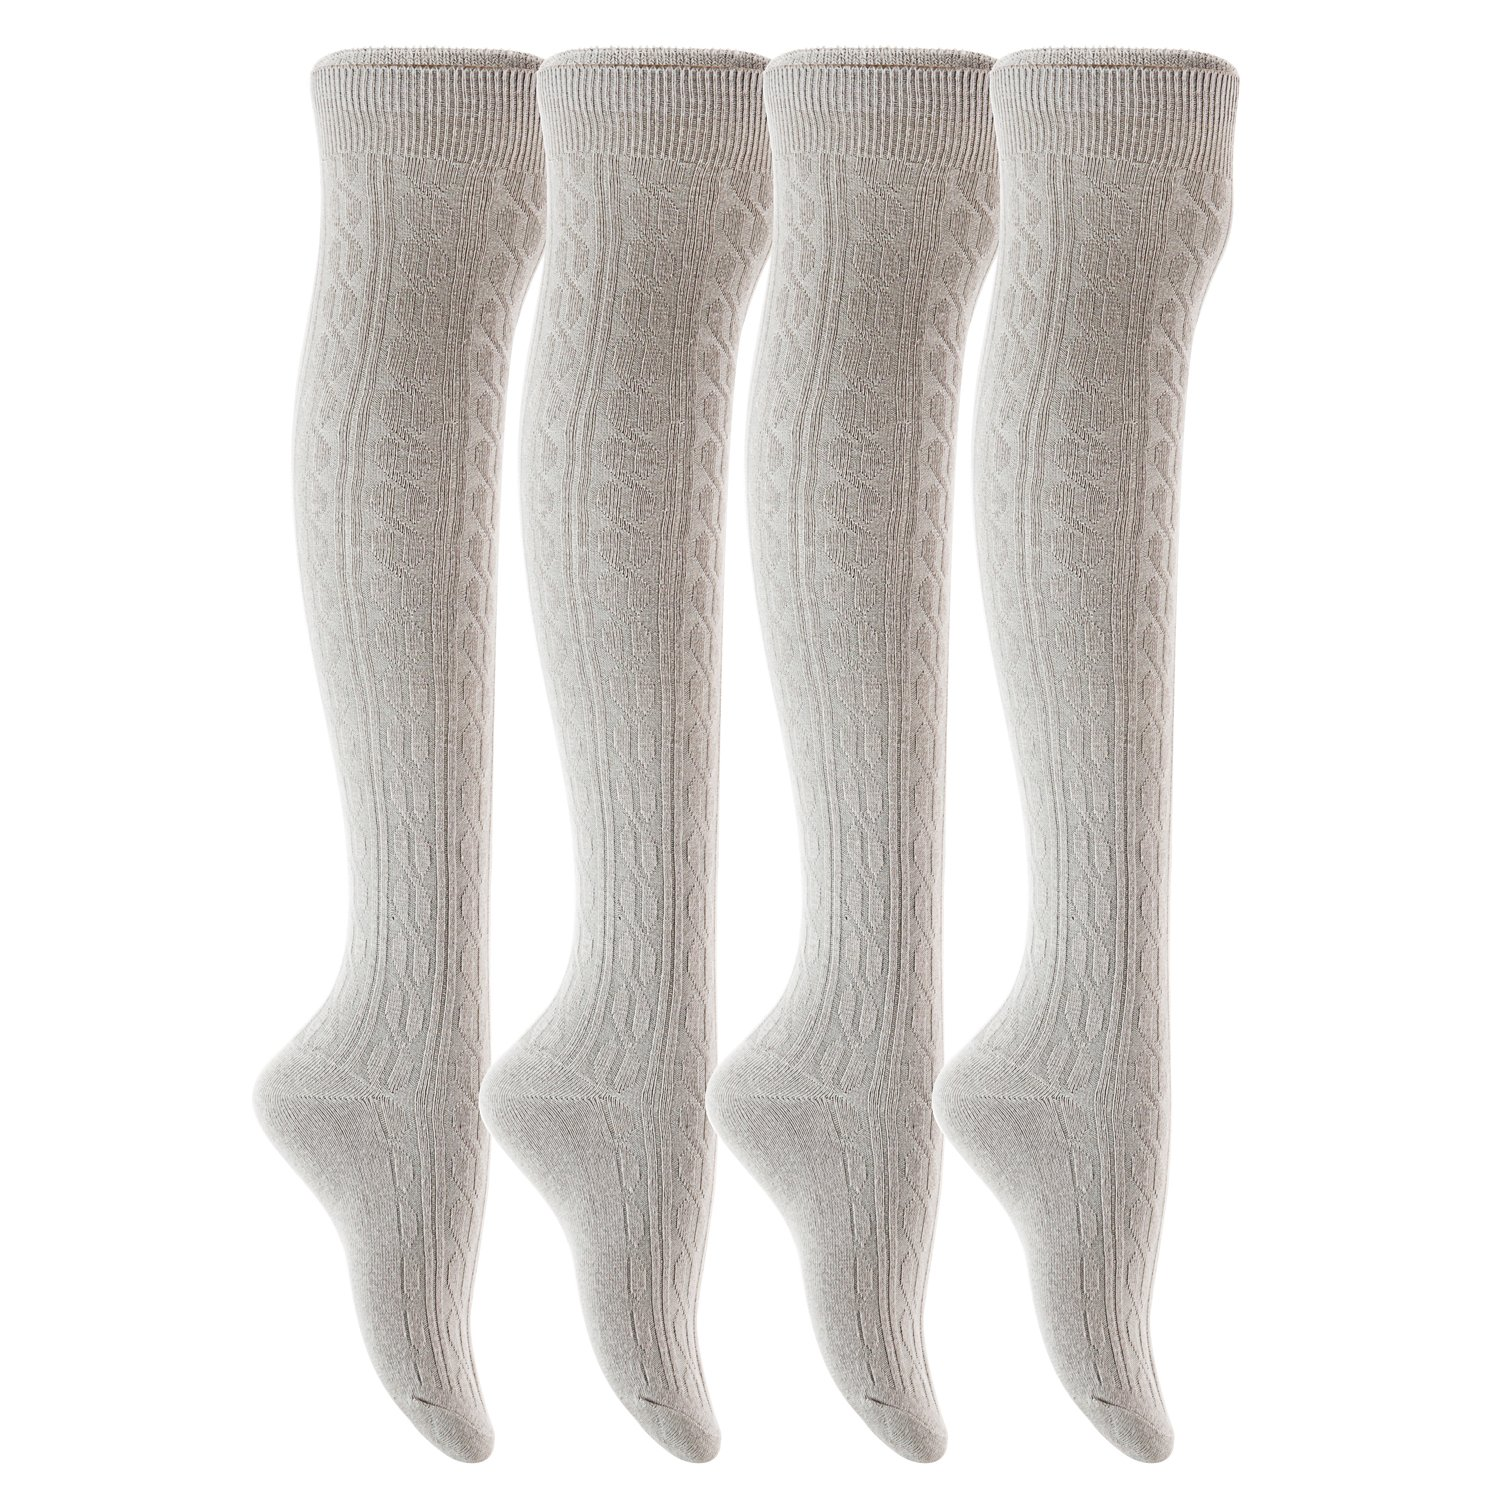 Light Grey AATMart Women's 4 Pairs Over KneeHigh Thigh High Cotton Socks Size 69